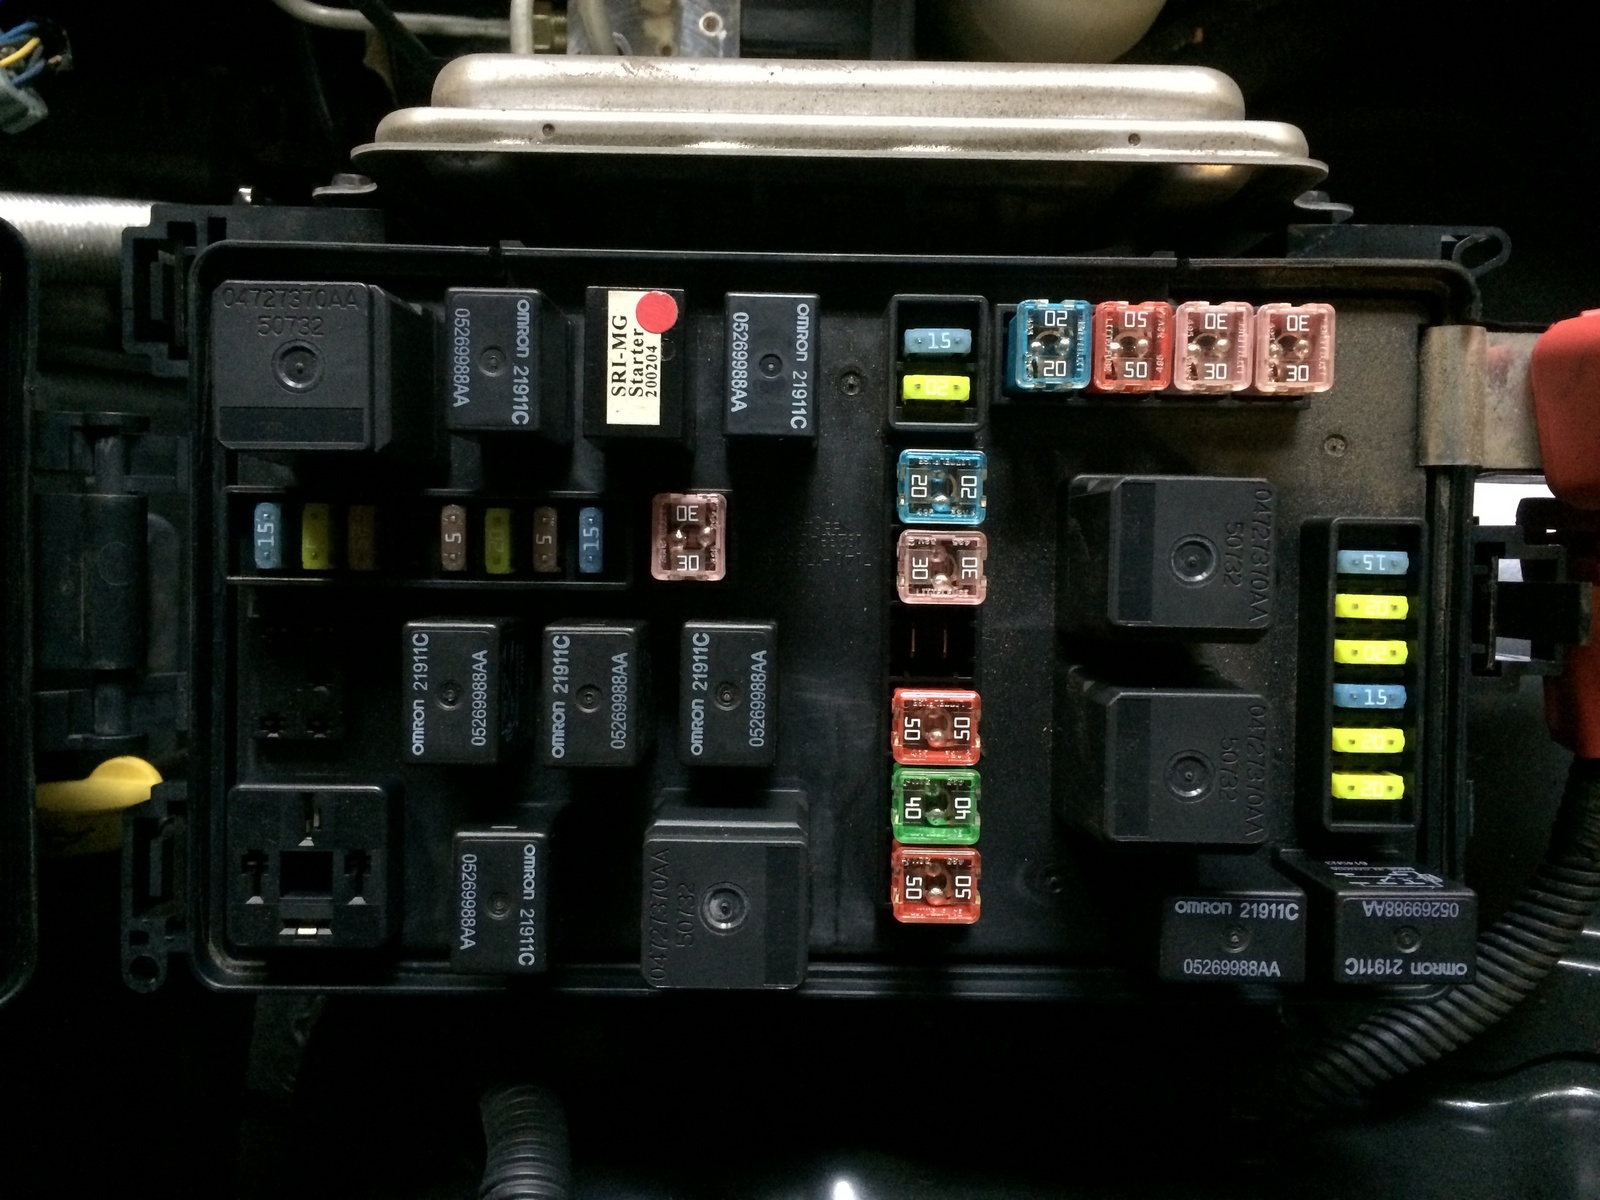 2008 Toyota Tundra Fuse Box Wiring Library Highlander Dodge Charger Questions Will Not Start Please